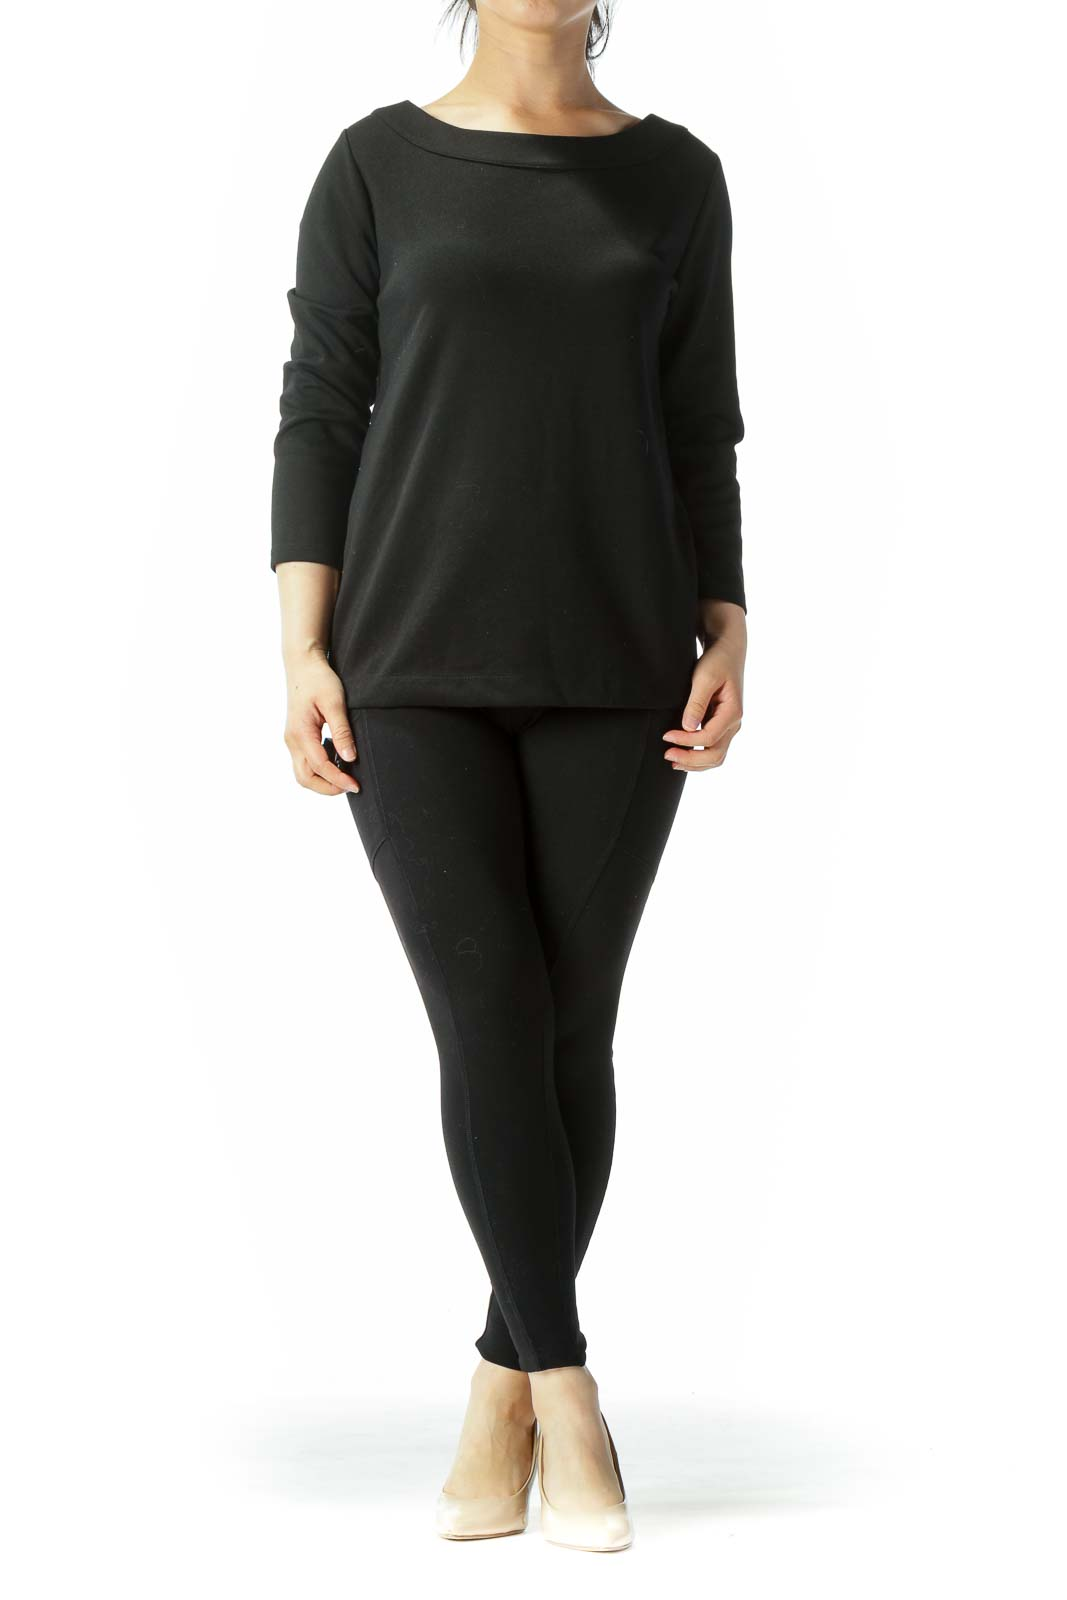 Black Side Zip 3/4 Sleeve Top